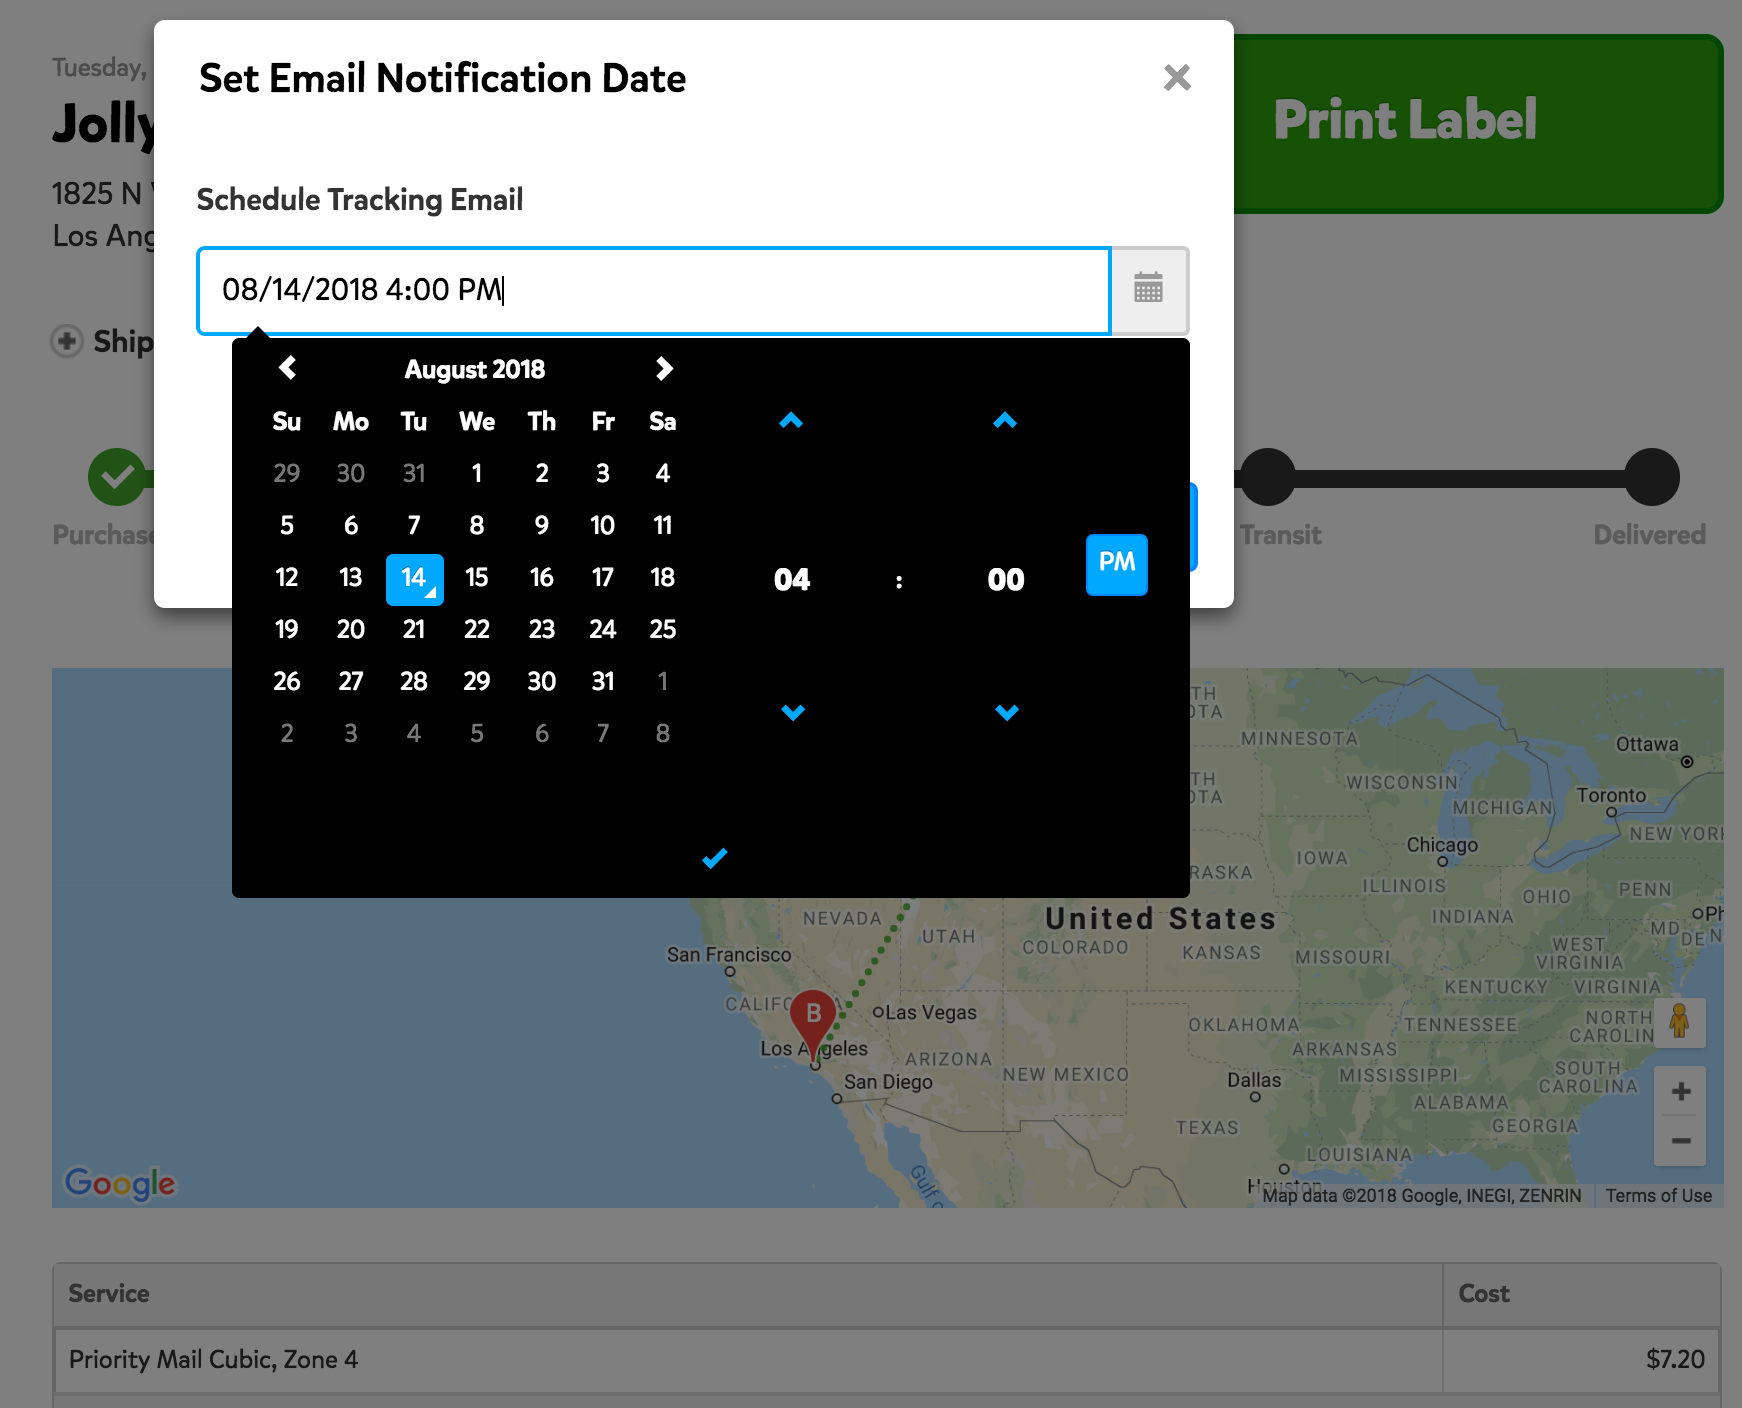 A screenshot showing the 'Set Email Notification Date' window that appears when you click the time stamp to change the email time. In this window, you can set the date and time that your recipient will receive the tracking email.